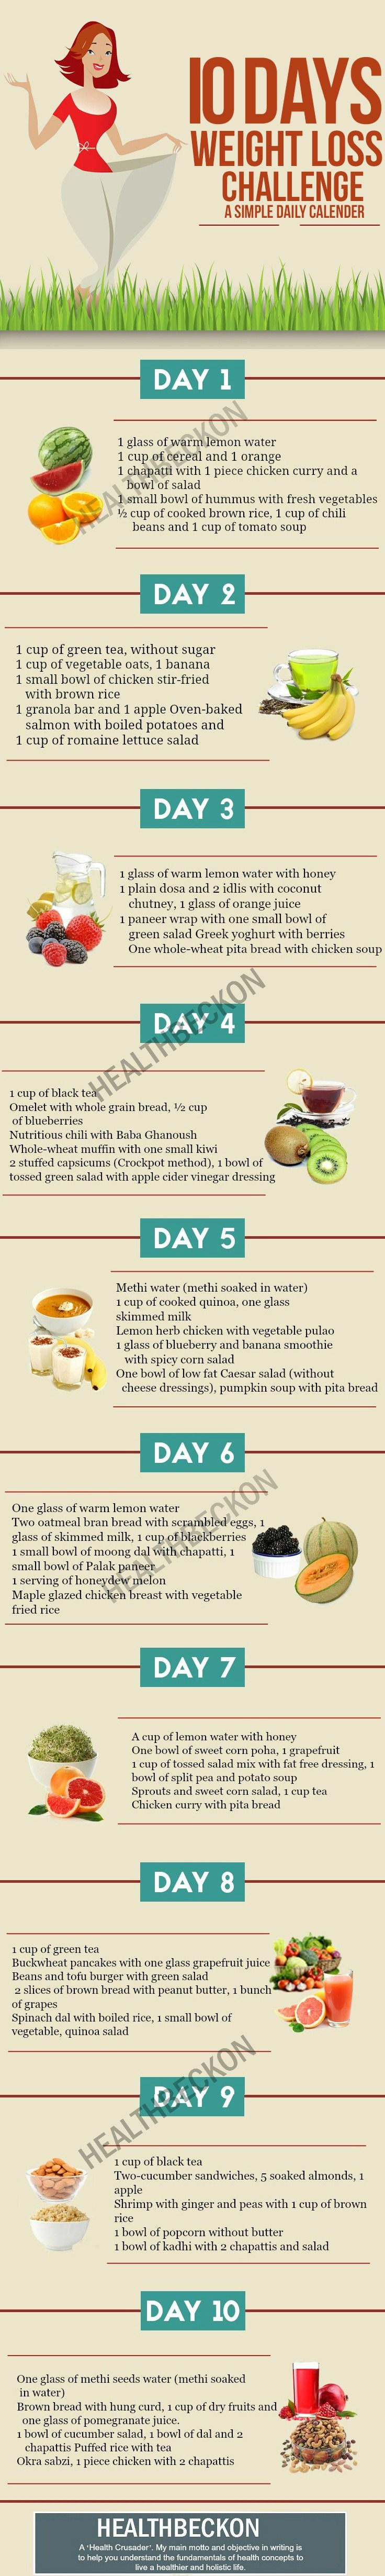 If you too are looking for ways to lose weight and live a healthier life, you have come to the right place! The following tips can